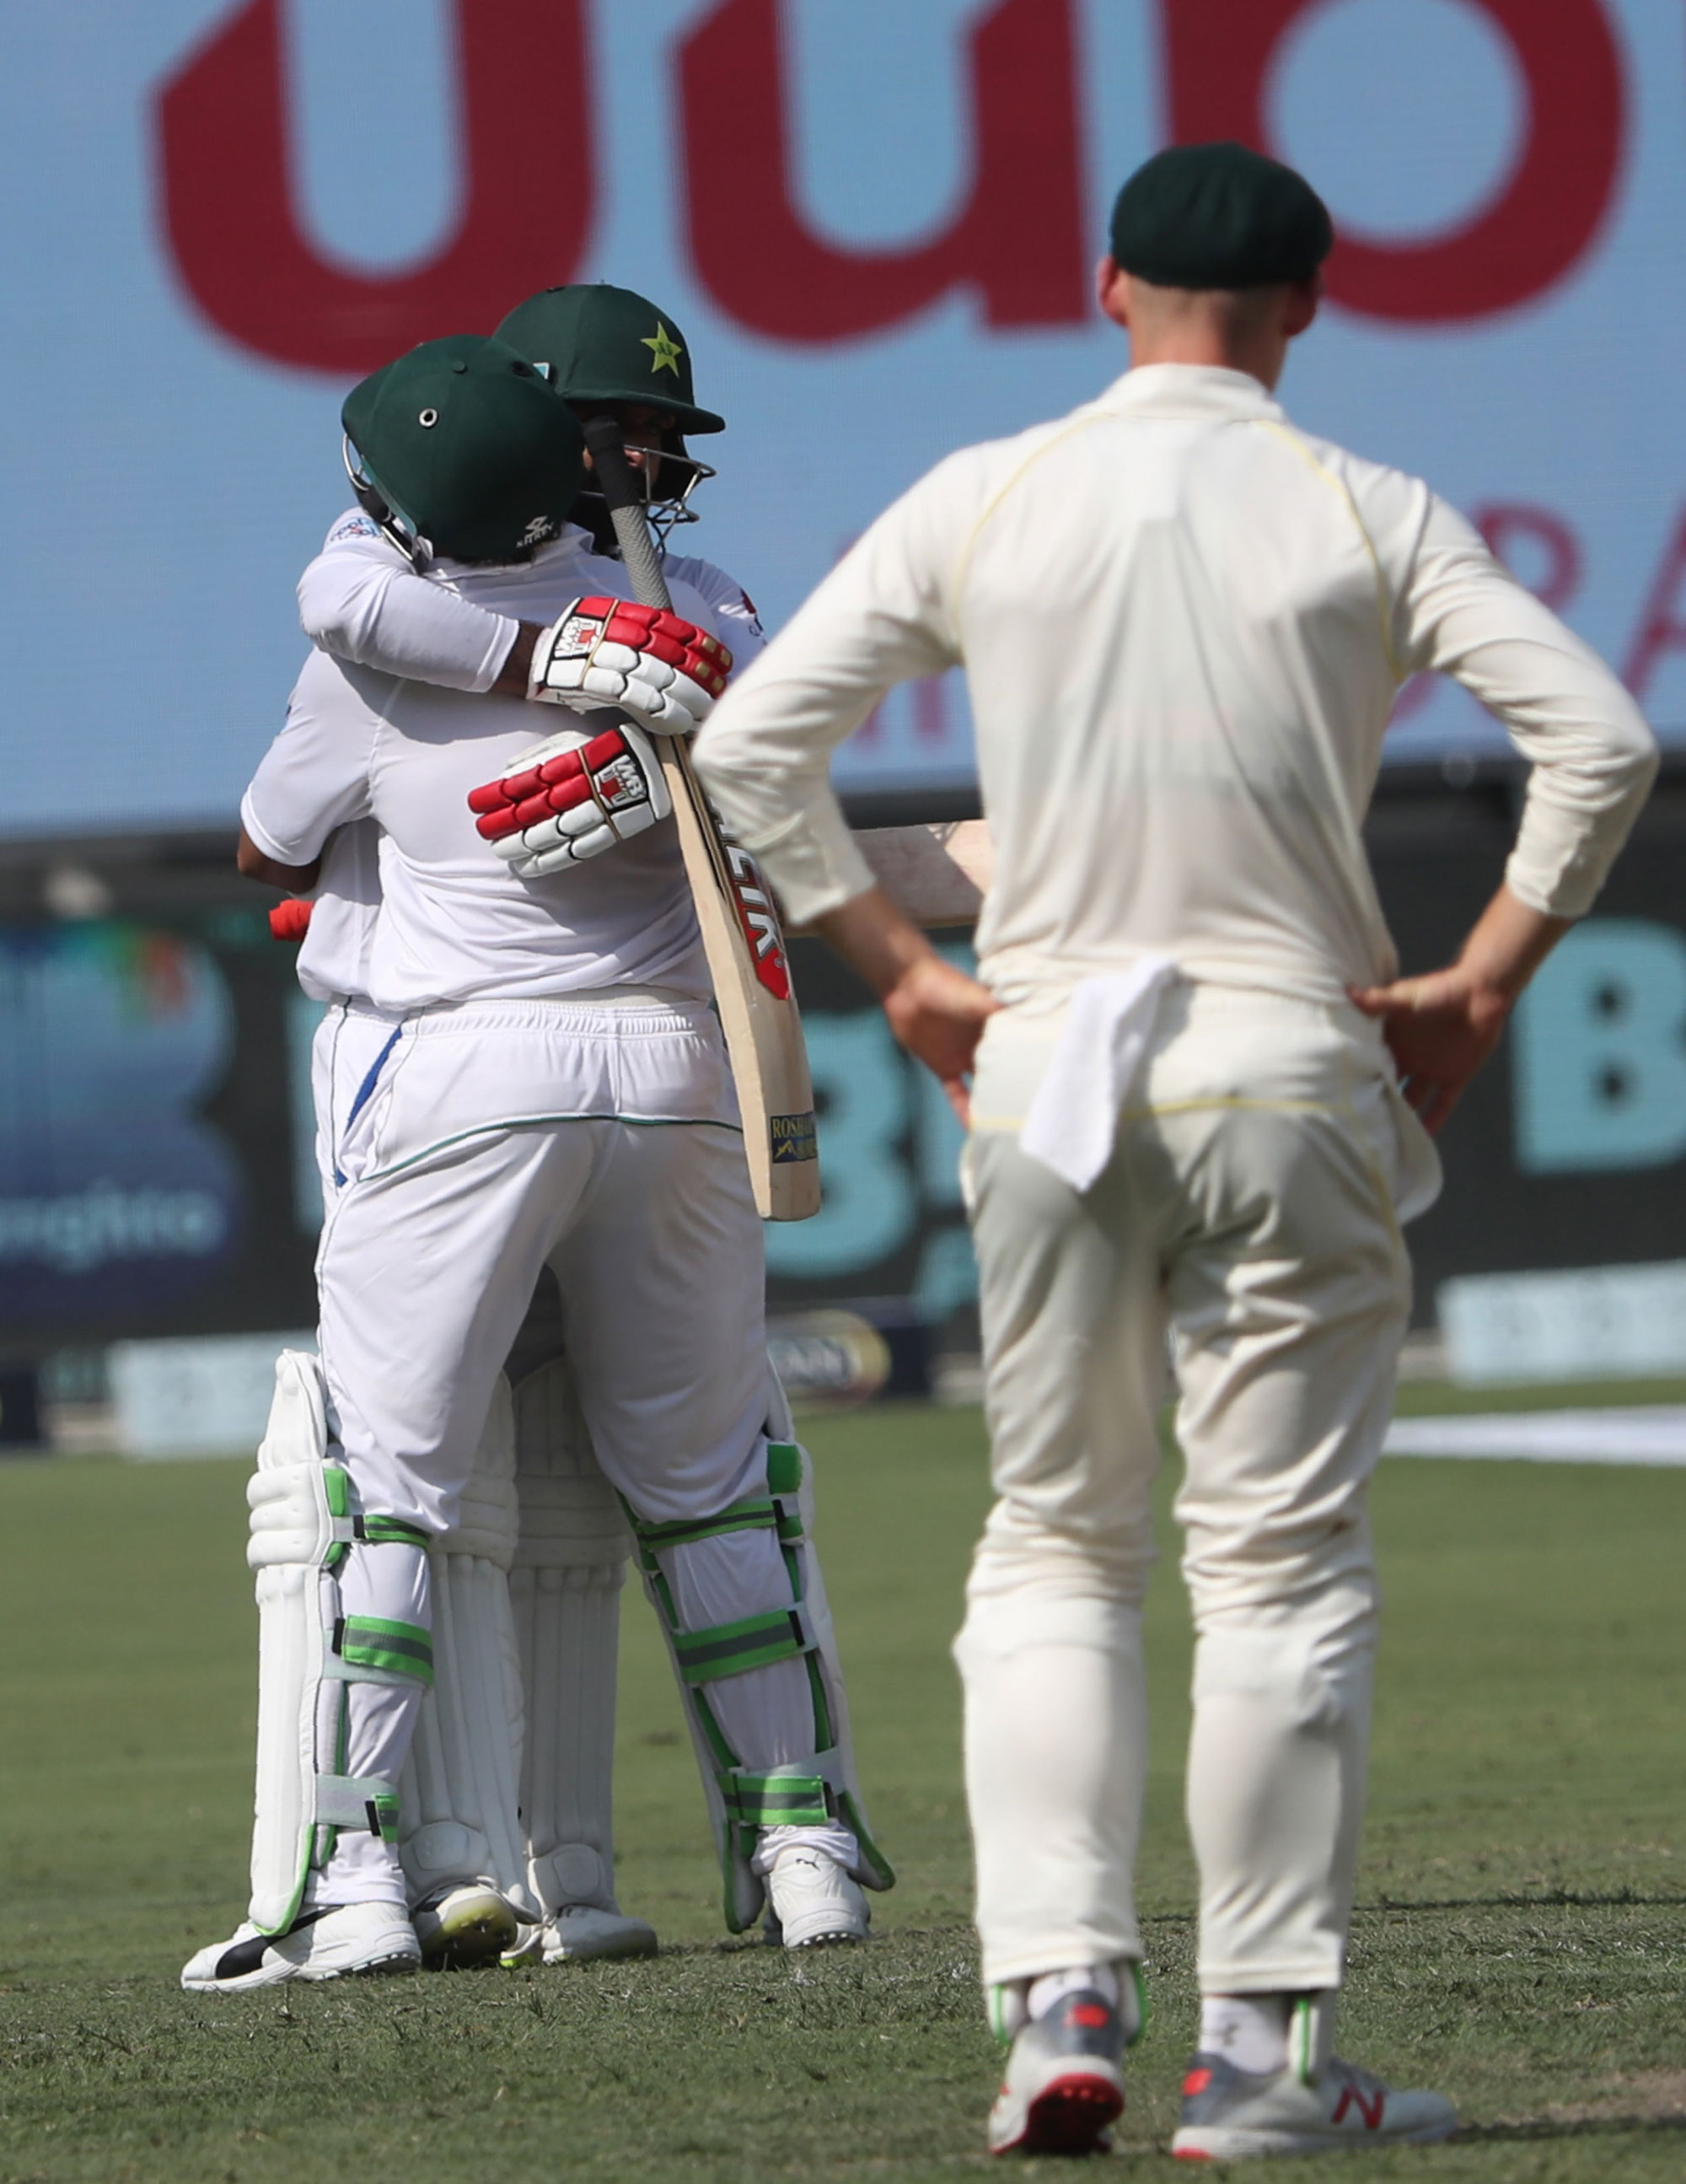 1.	Pakistan cricketer Mohammad Hafeez of Pakistan (L) celebrates his century on day one of the 1st test cricket match between Australia and Pakistan at the Dubai International Cricket Stadium in Dubai on October 7, 2018. - Pakistan openers Mohammad Hafeez